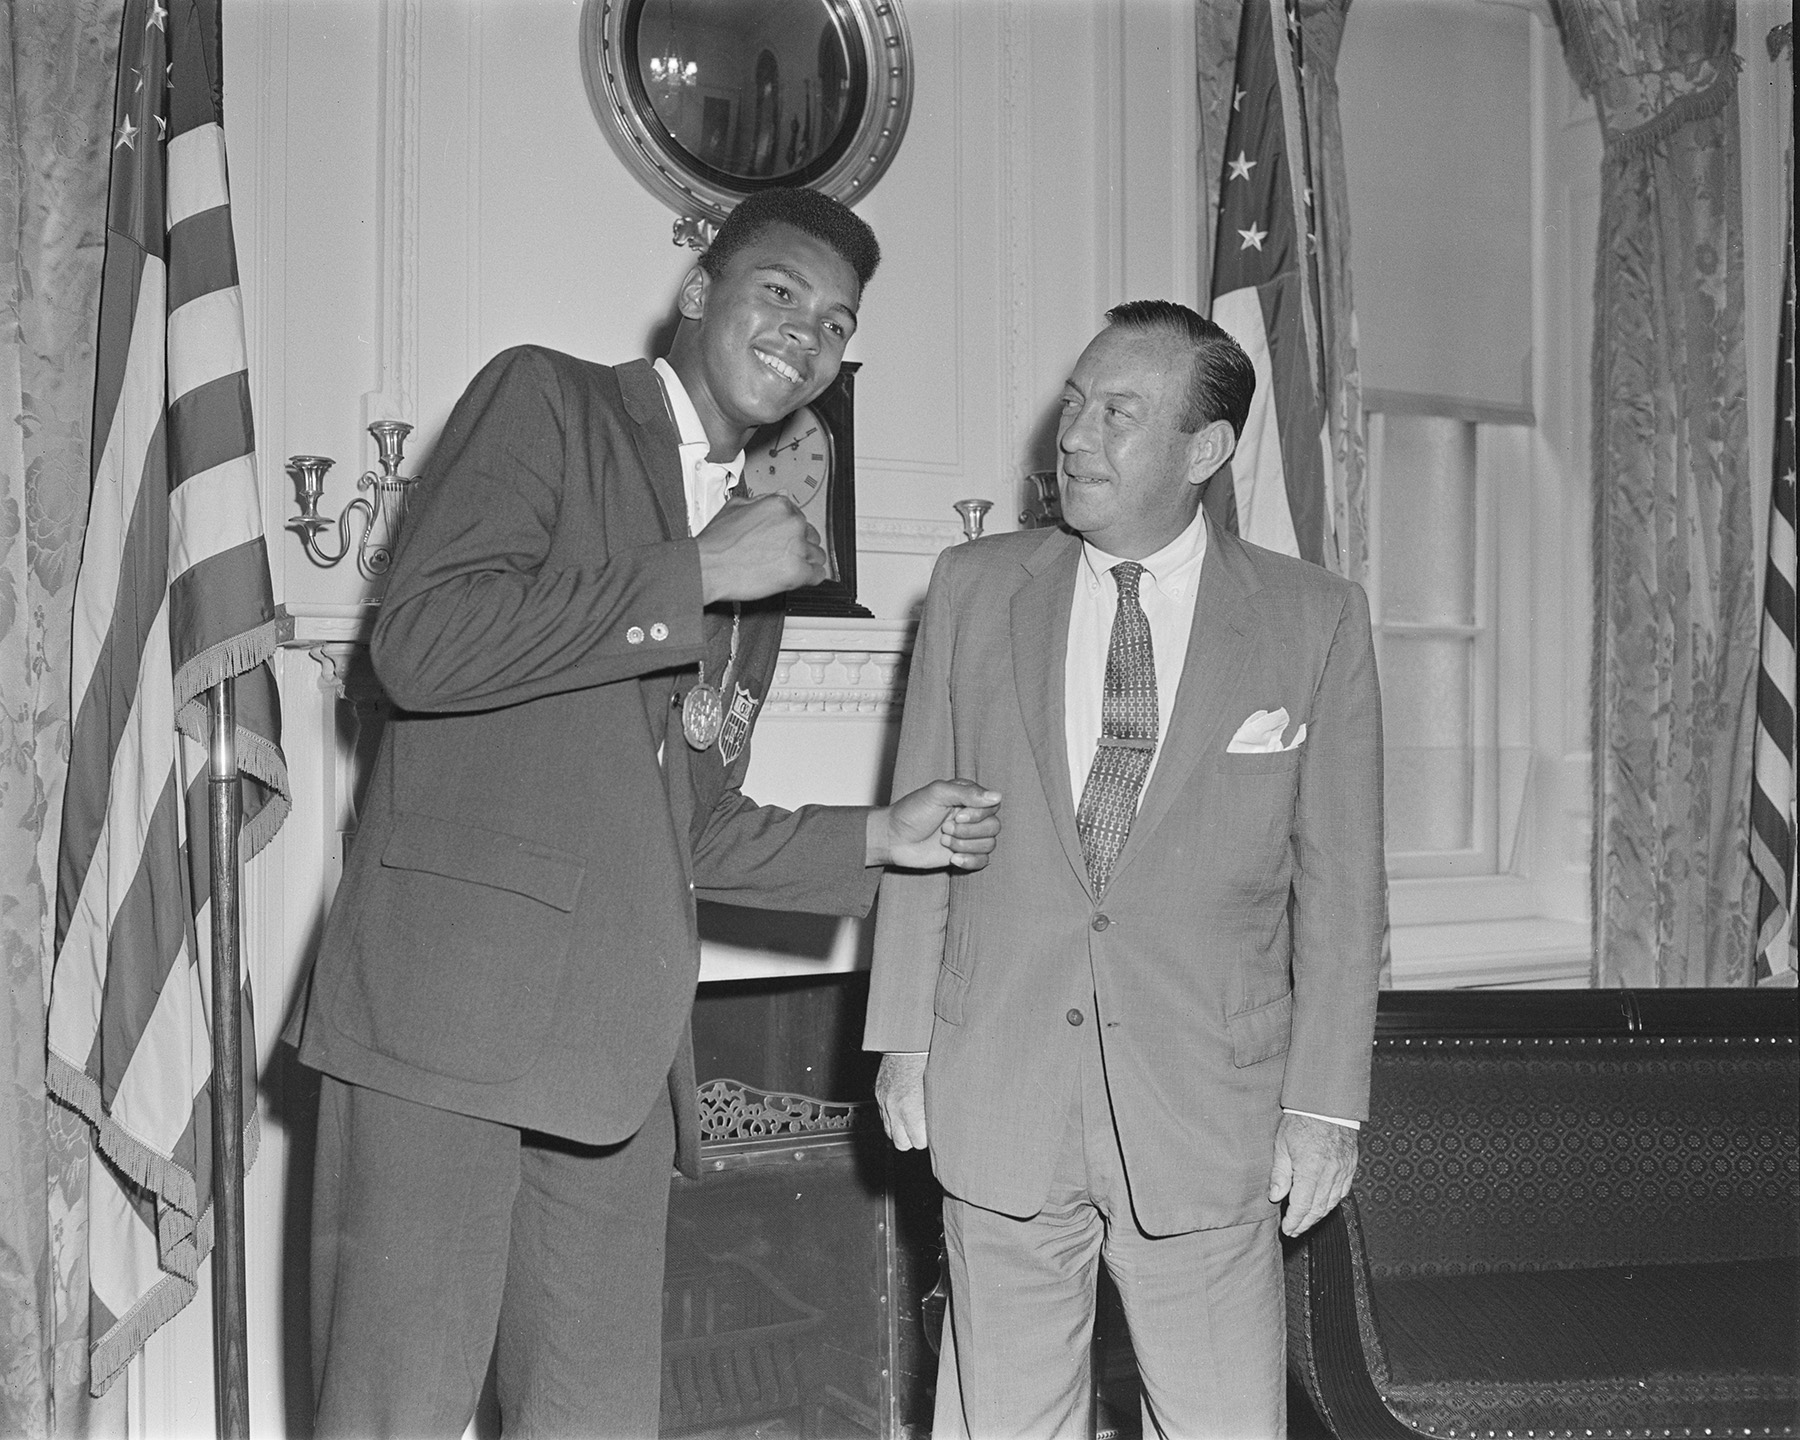 Mayor Wagner greeted Muhammed Ali, then known as Cassius Clay, the light heavyweight champion at City Hall on September 9, 1960. Official Mayoral Photographs, NYC Municipal Archives.